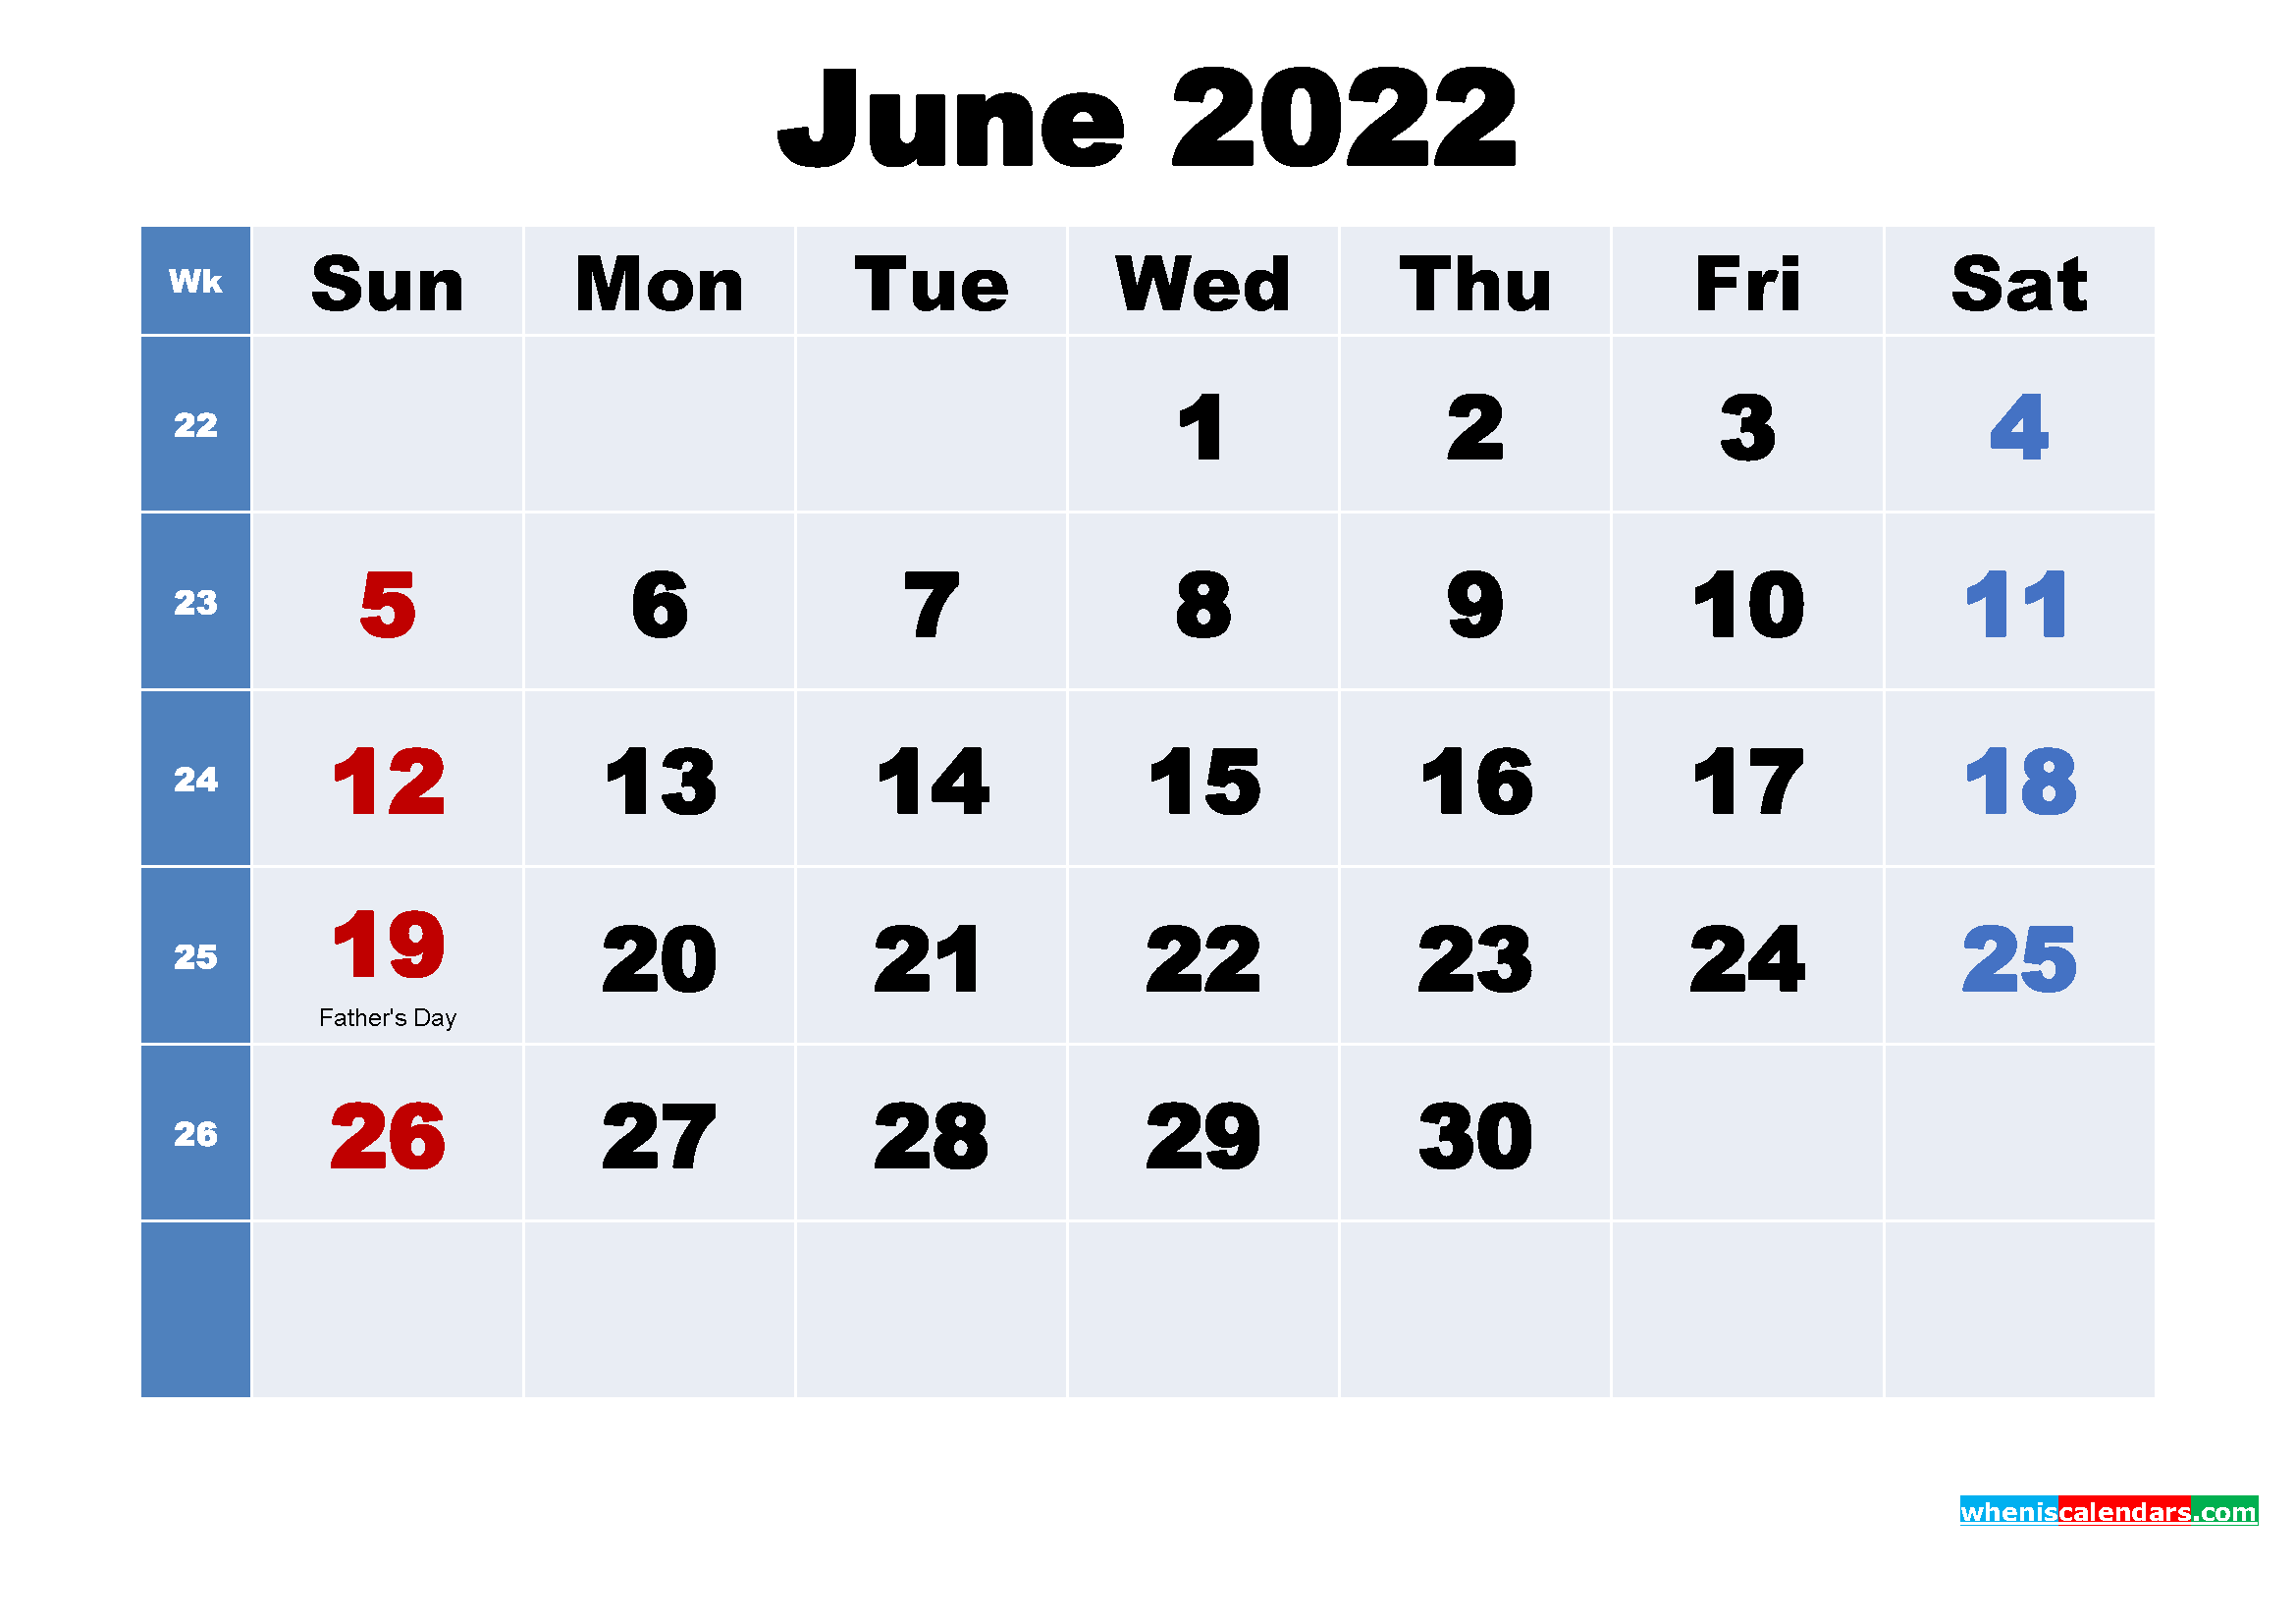 June 2022 Free Printable Calendar with Holidays